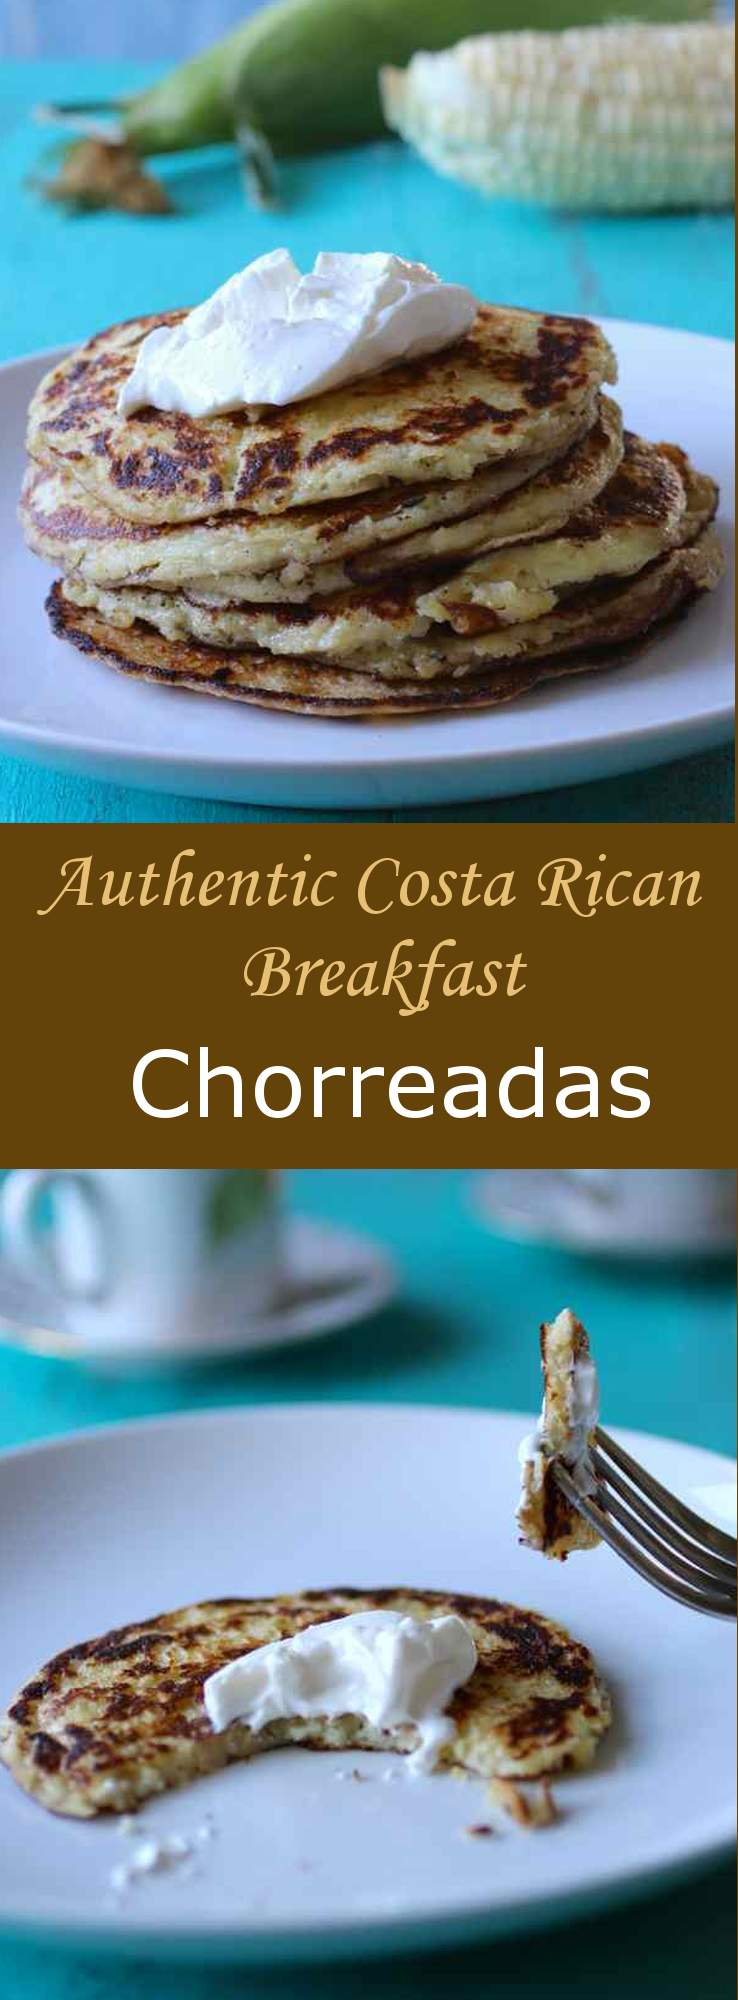 Chorreadas are traditional quick to make Costa Rican pancakes prepared with fresh corn which can be served for breakfast, for lunch or as a snack. #breakfast #vegetarian